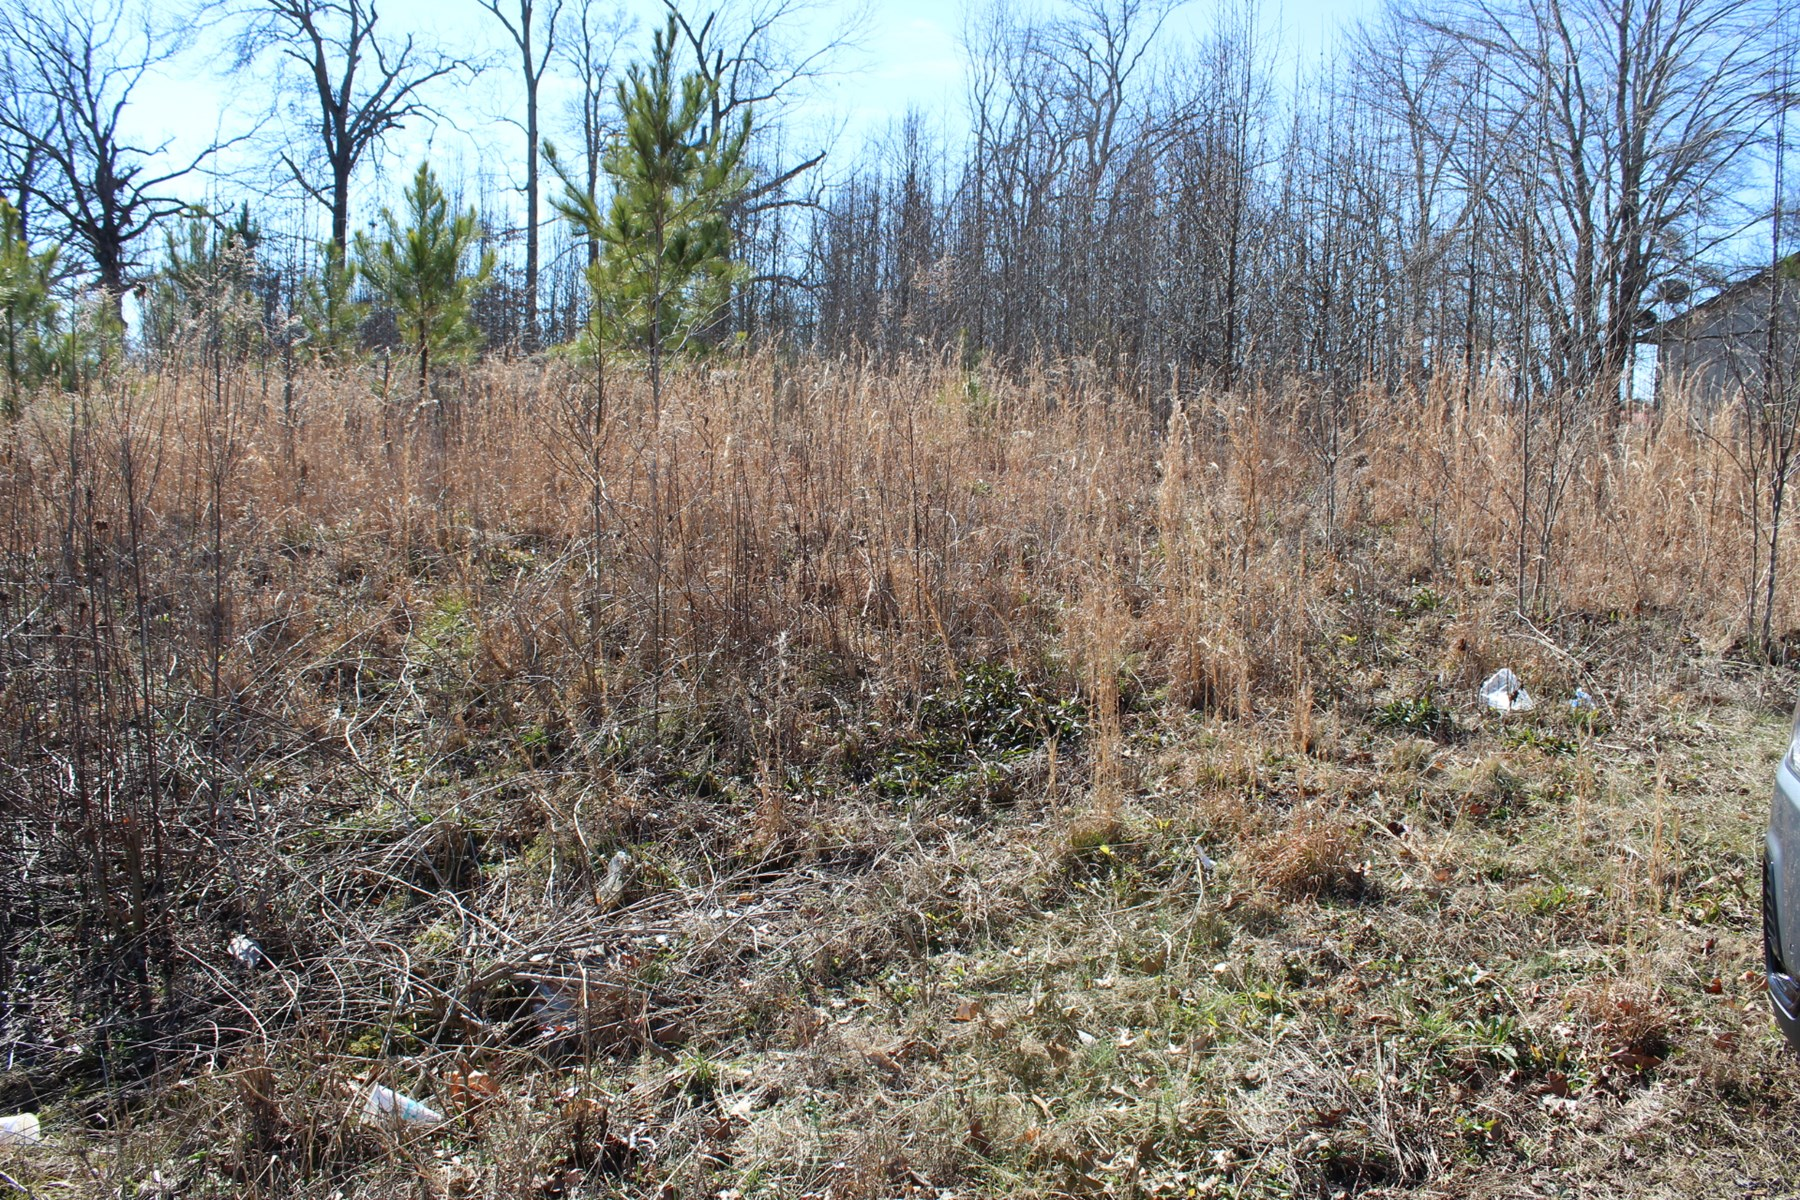 LAND FOR SALE TO BUILD A HOME ON IN SMALL TOWN TN